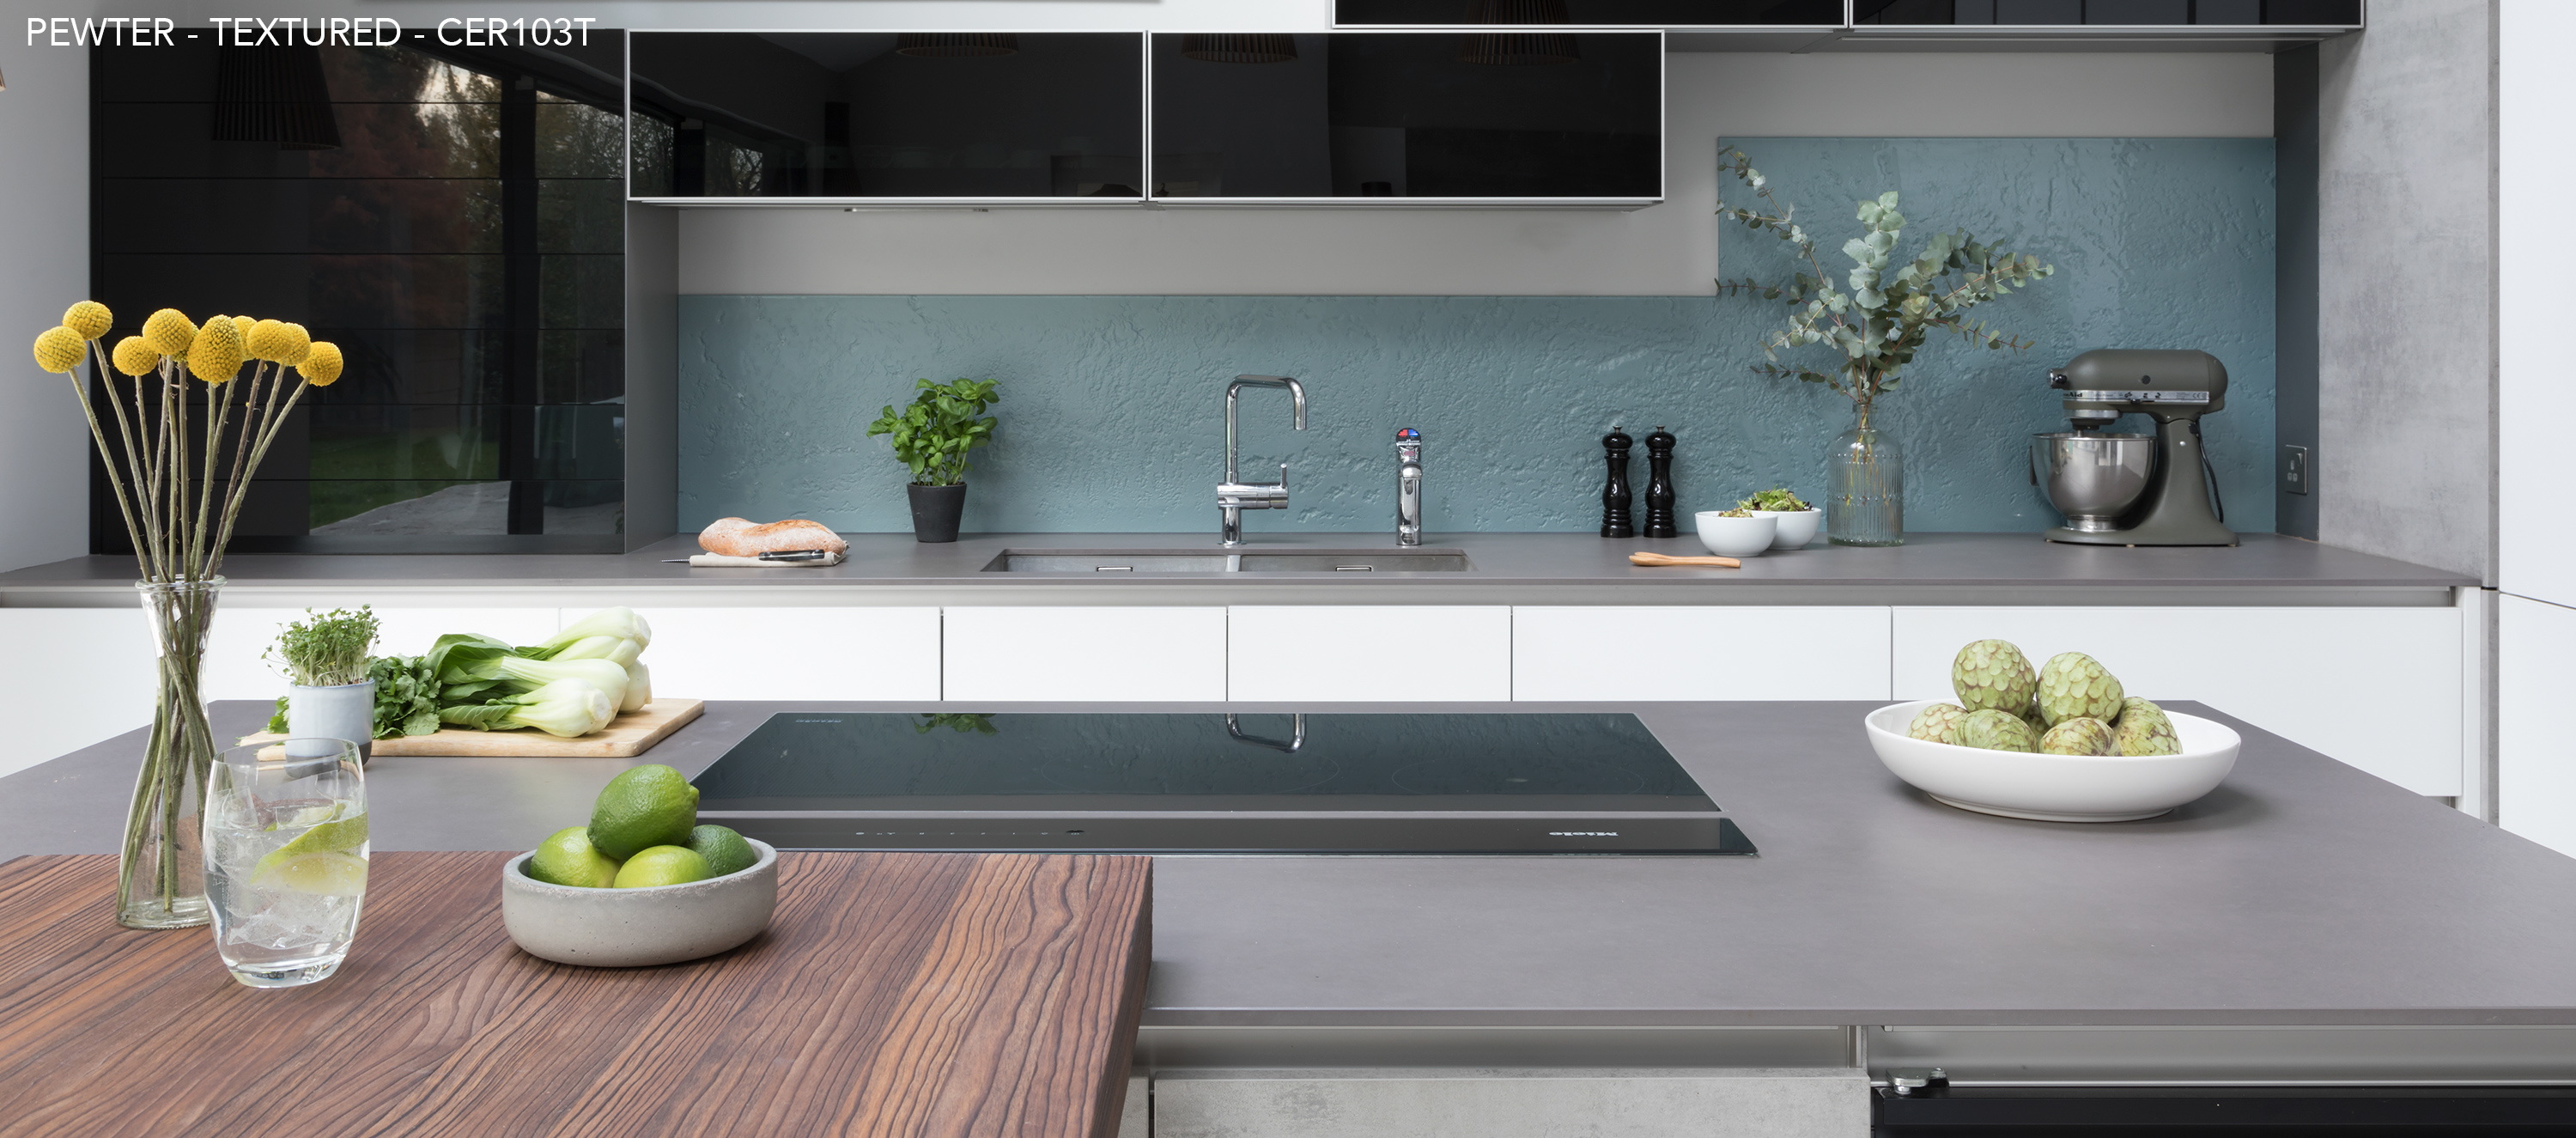 Ceralsio Pewter worktop